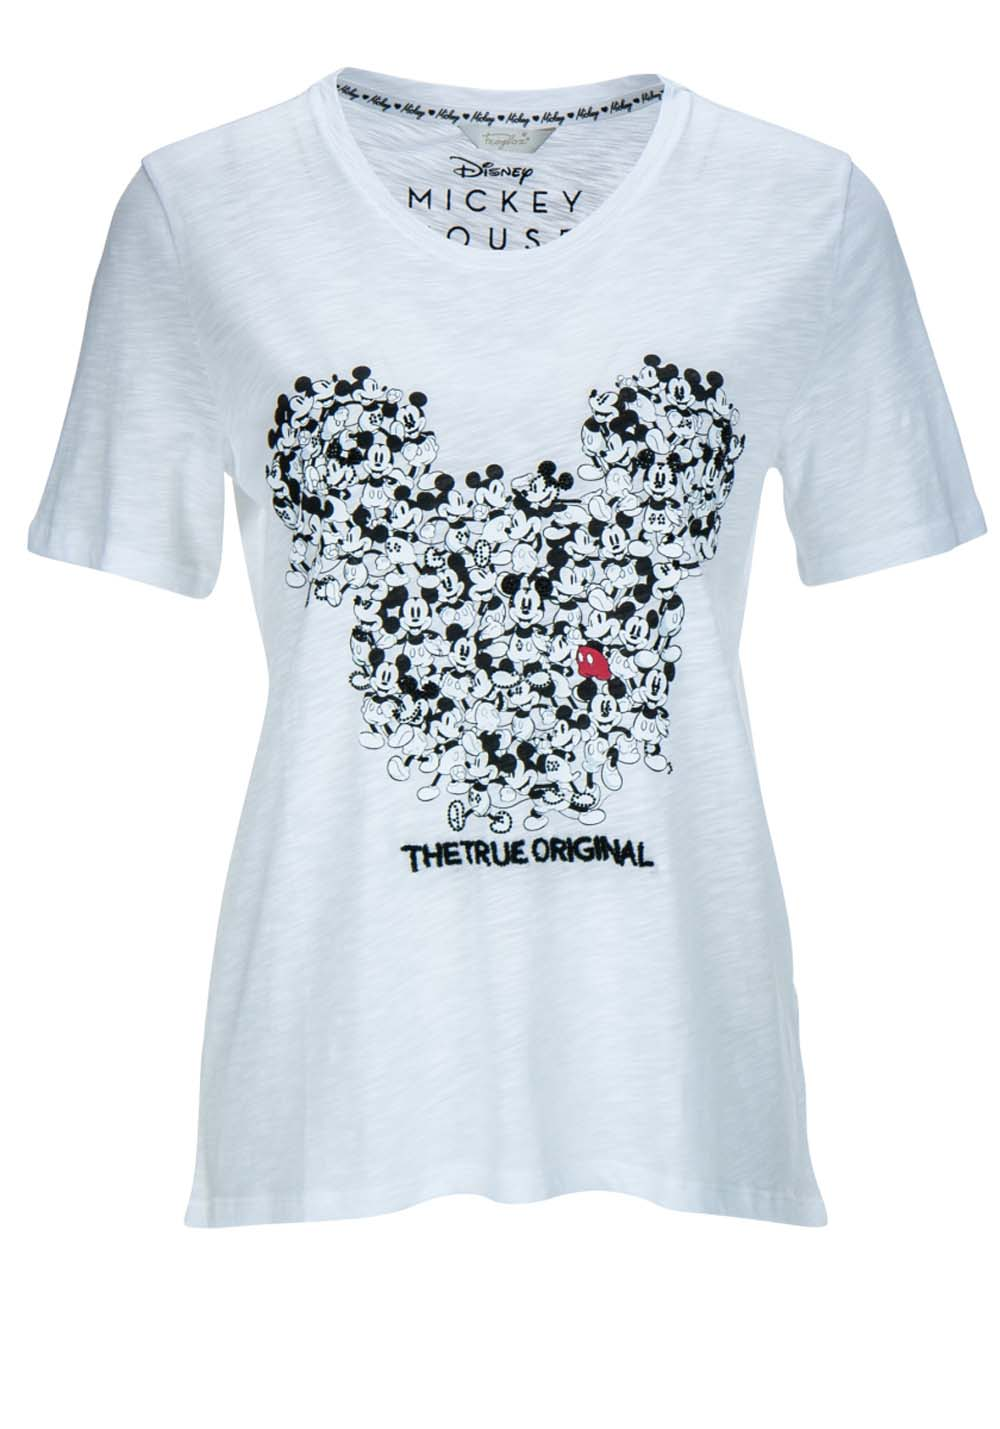 T-Shirt Frogbox Mickey Mouse The true original